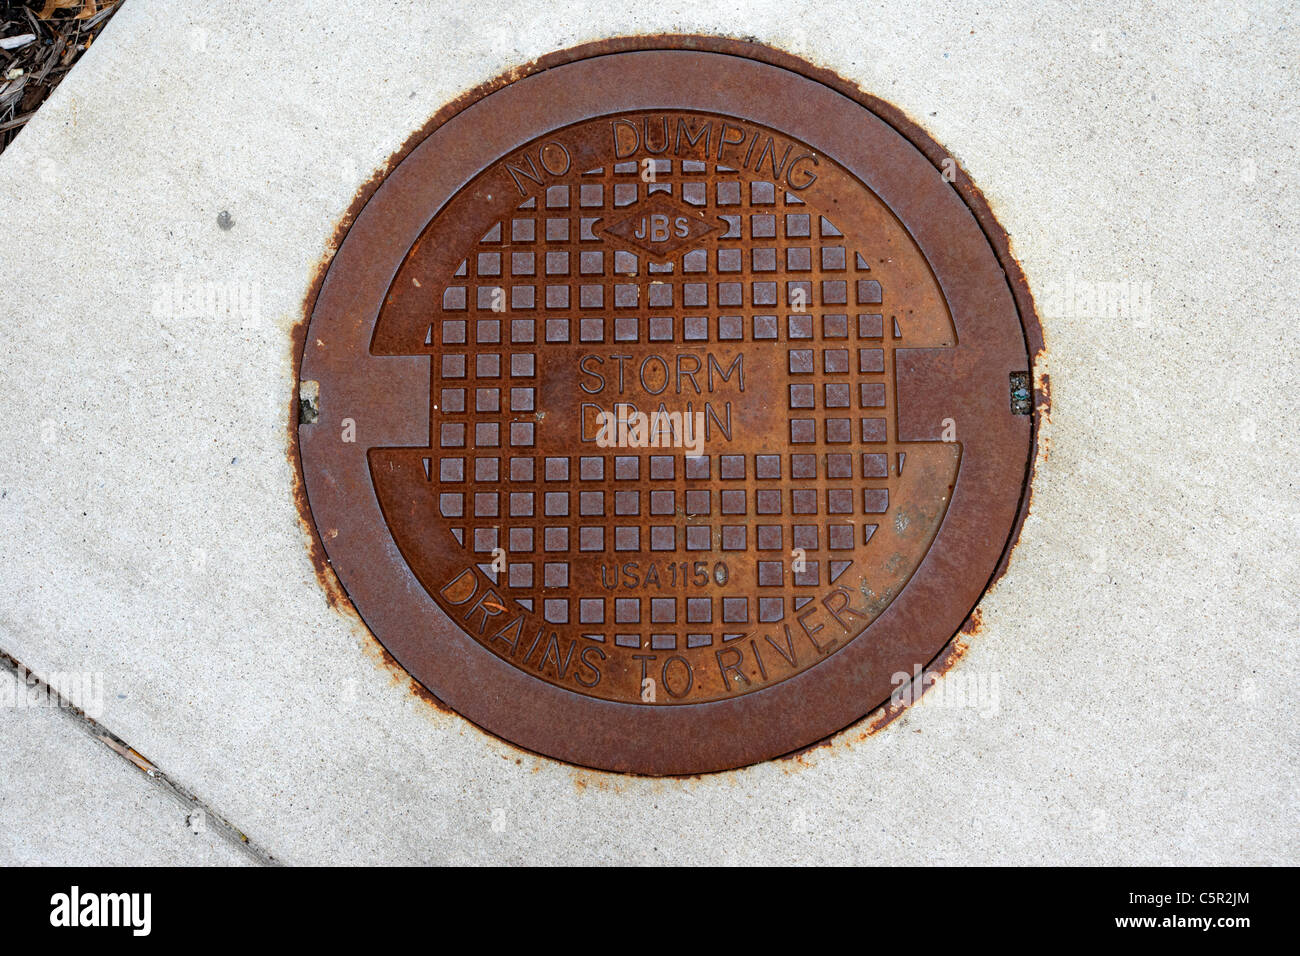 no dumping storm drain man hole cover drains to river Nashville Tennessee USA - Stock Image